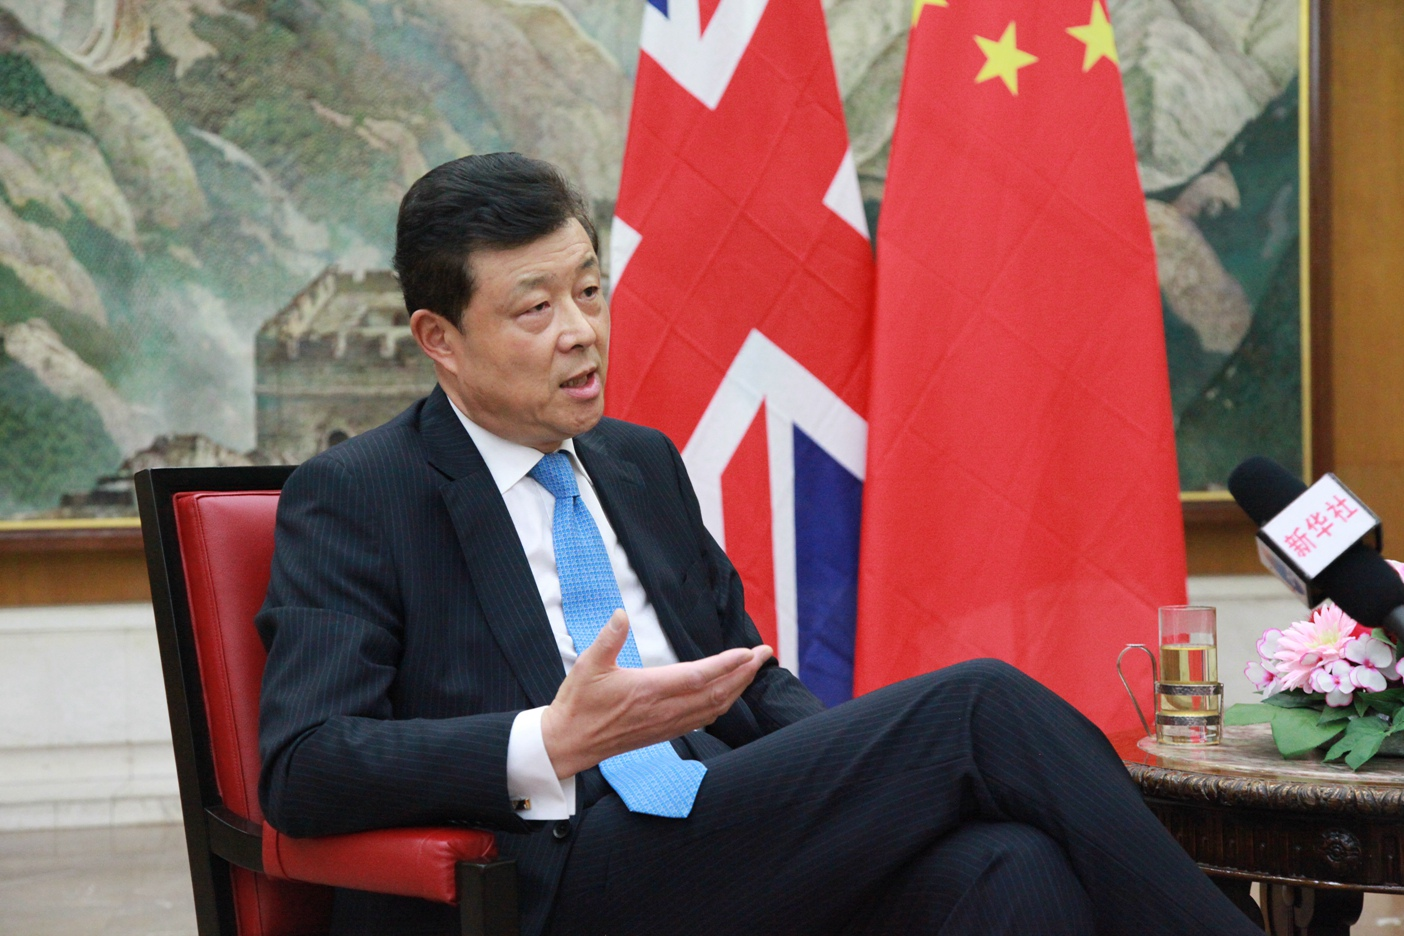 Britain can take giant strides on China's 'new silk road': ambassador